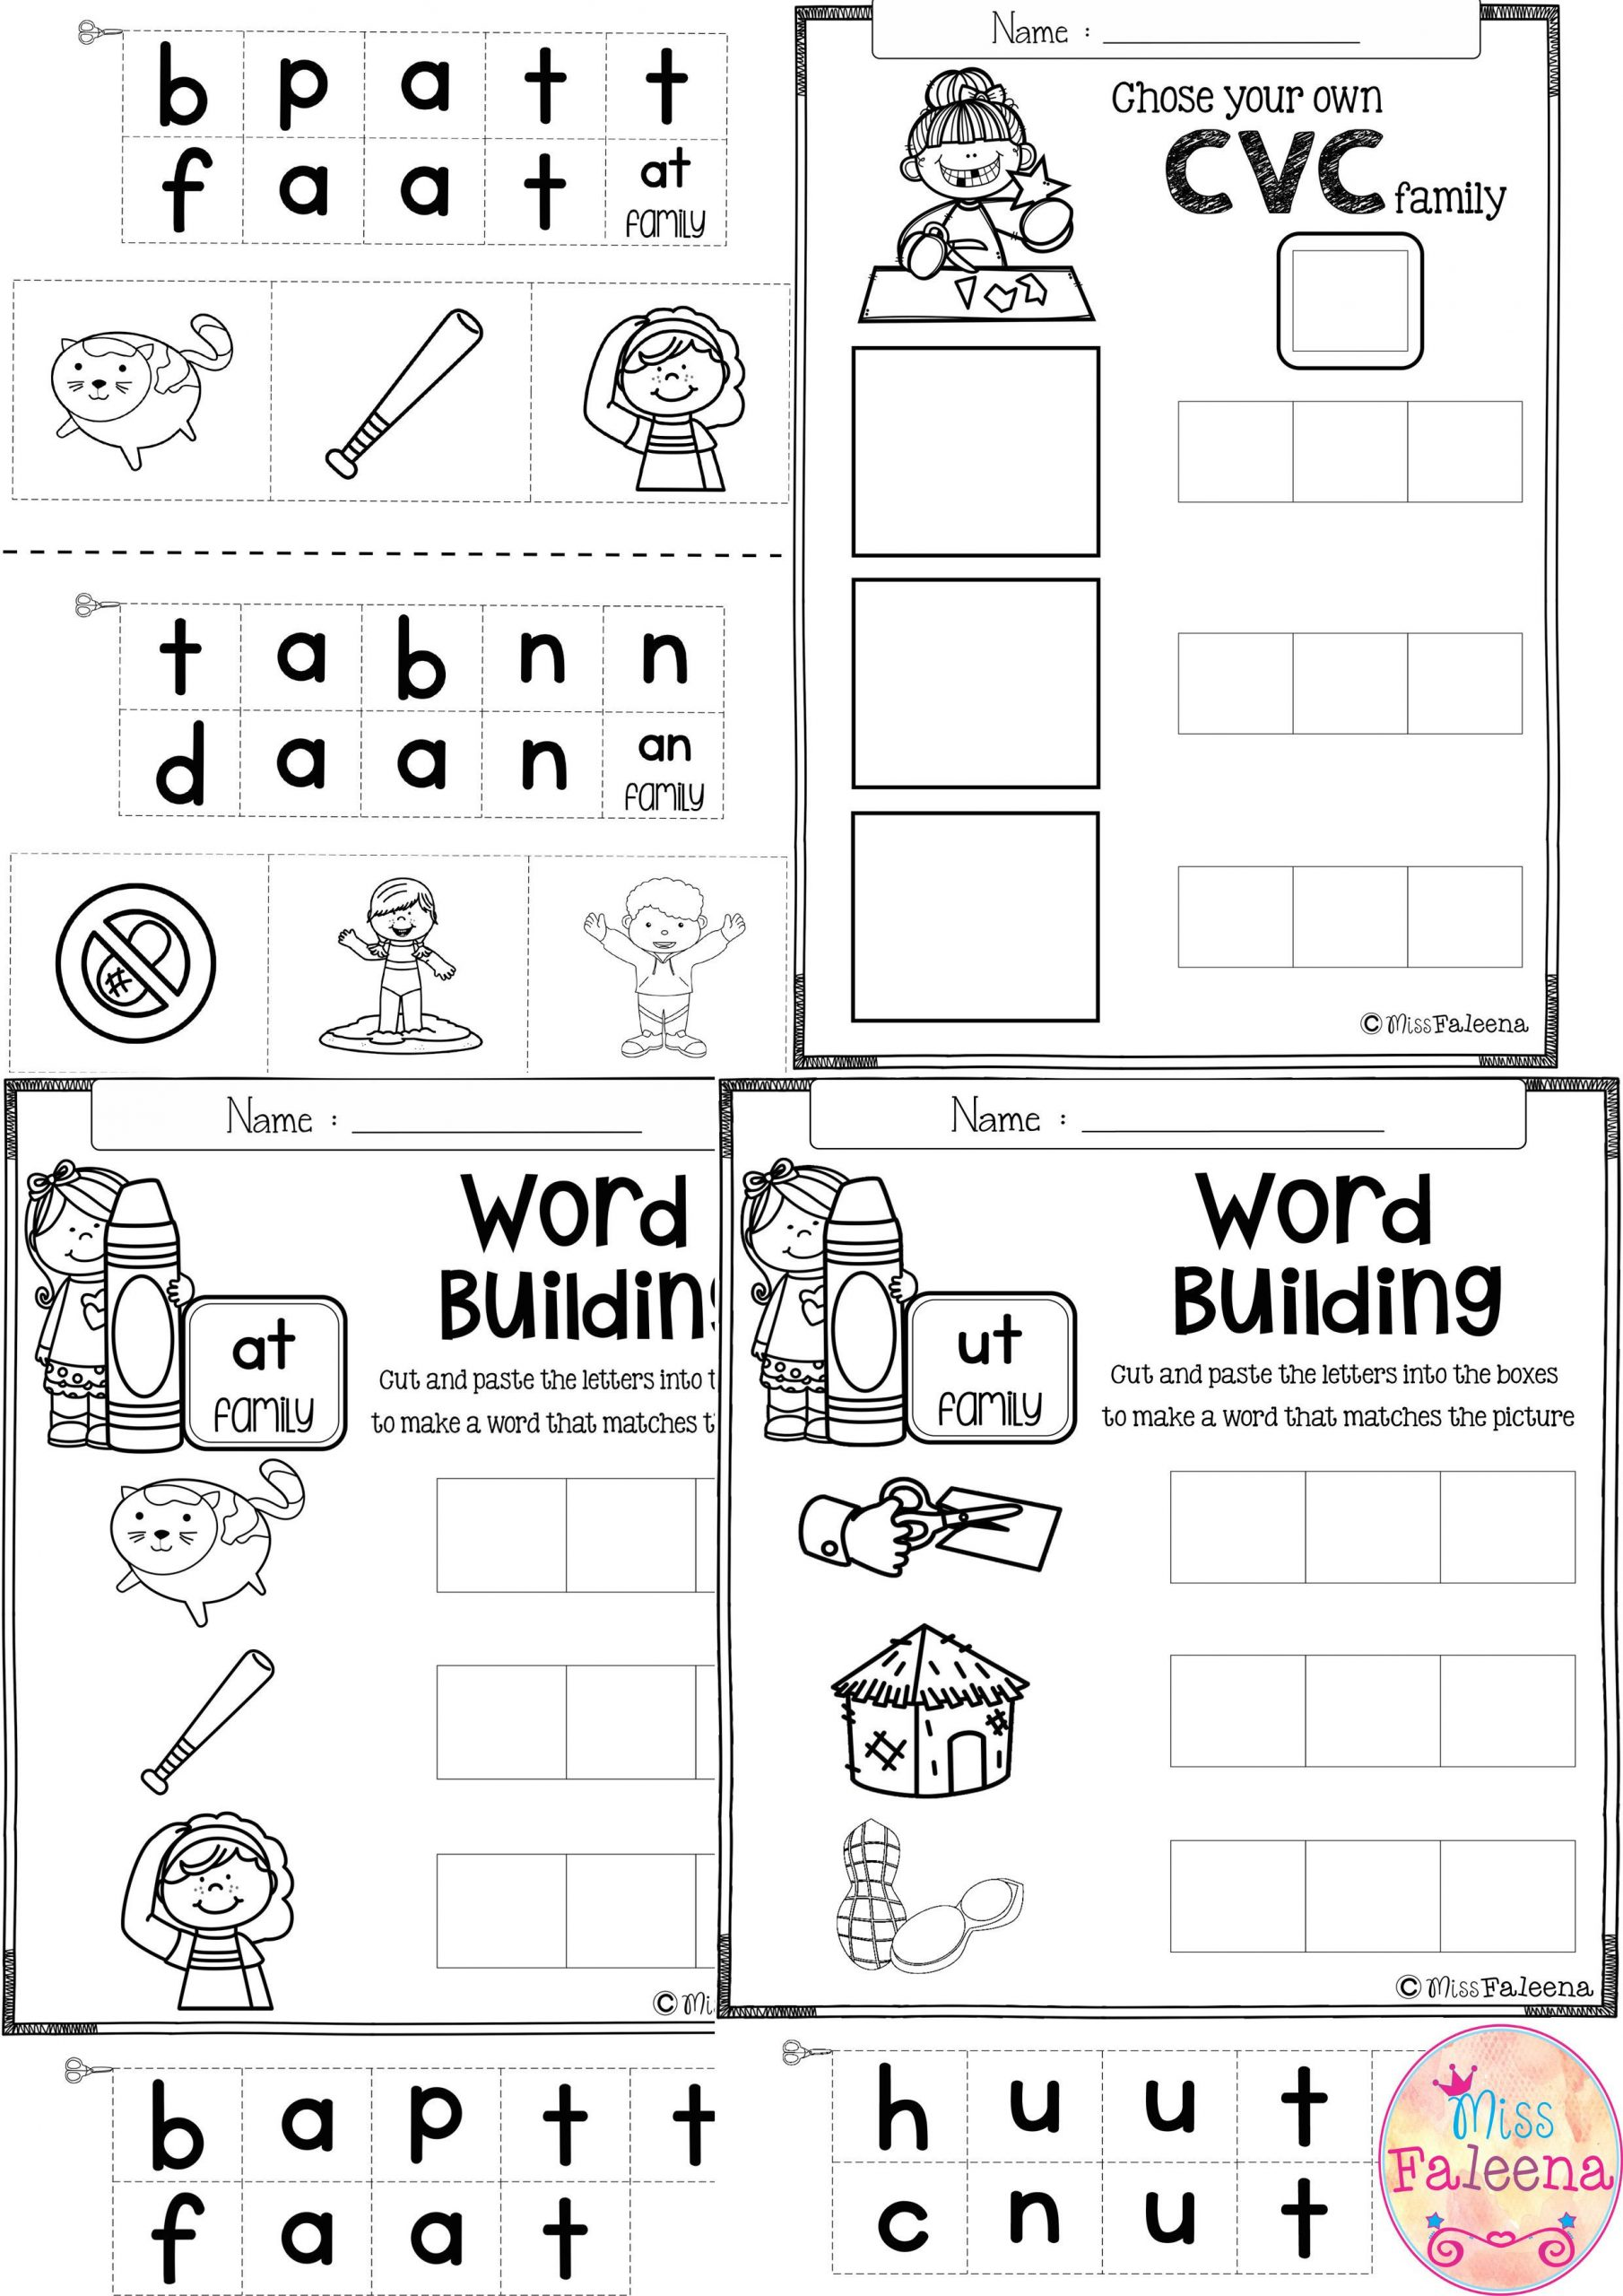 Cvc Worksheets for First Grade Free Cvc Word Building Practice This Product Will Help to